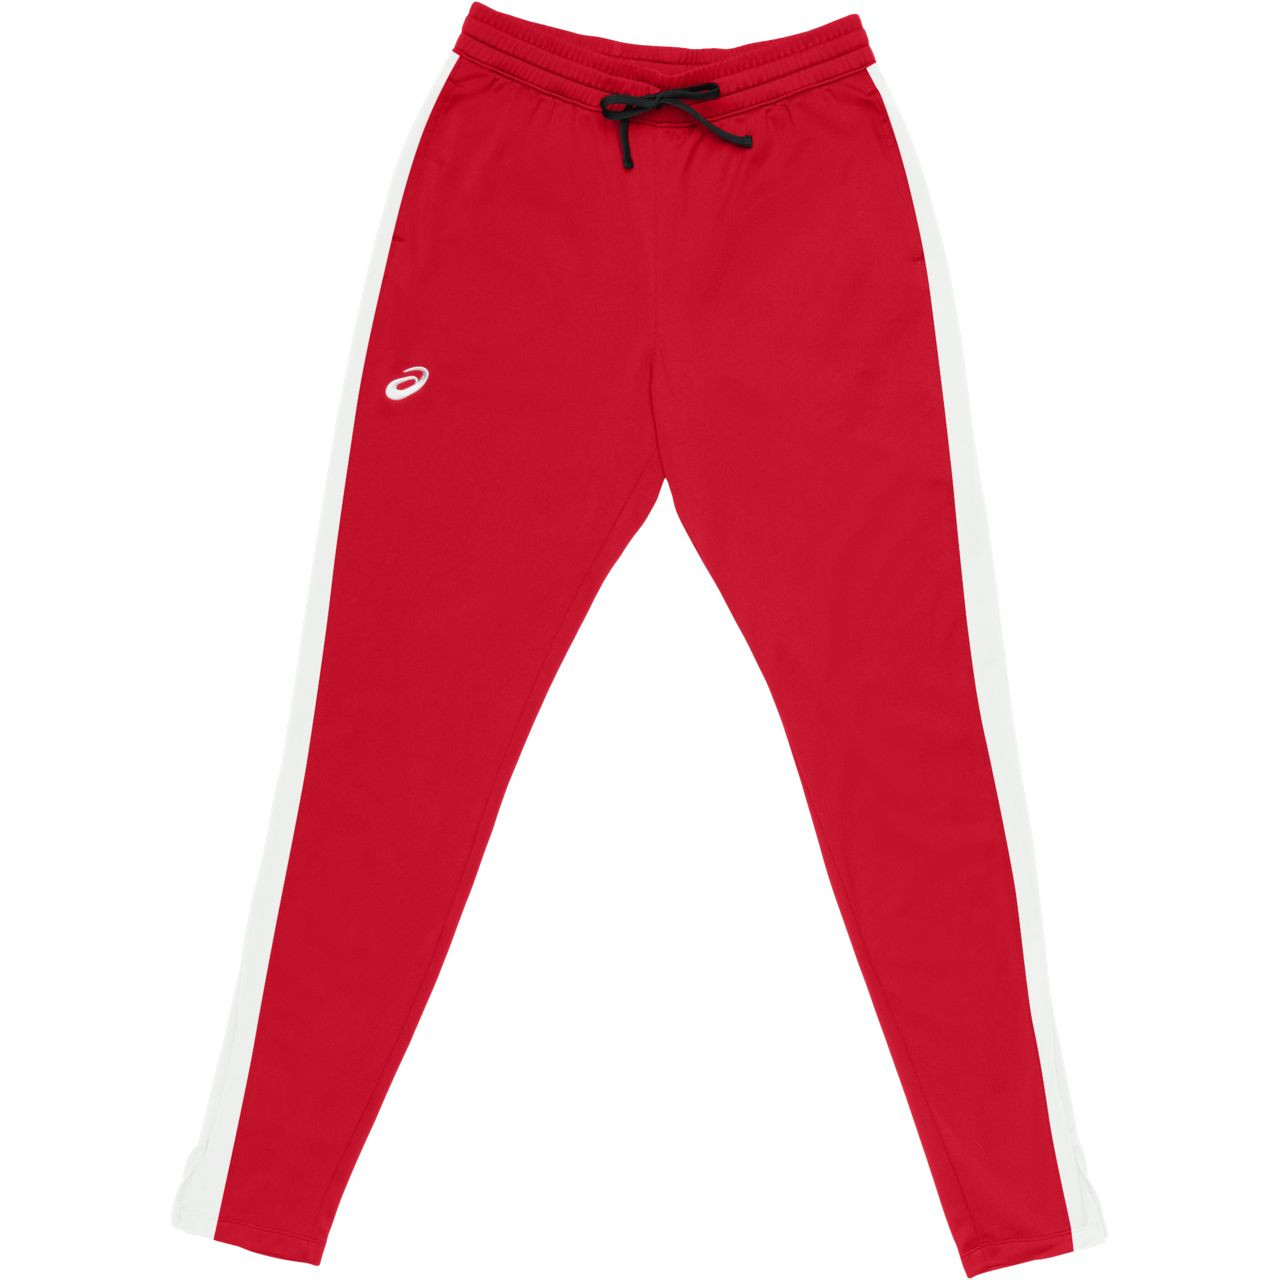 489a6292ff Asics Women's Tricot Warm Up Pant